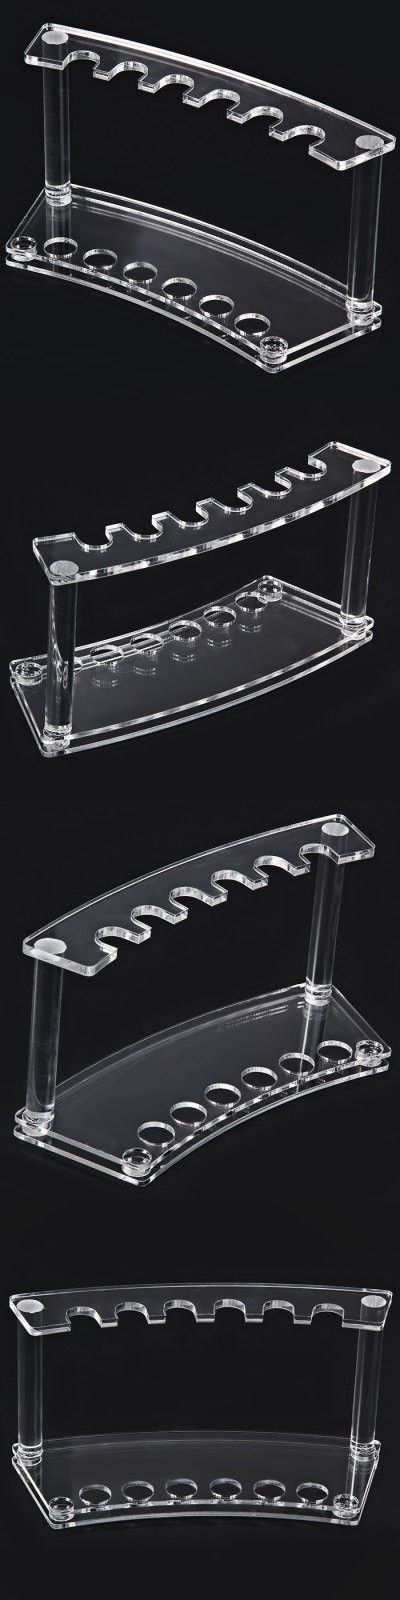 E-cigarette Acrylic Display Stand 14mm